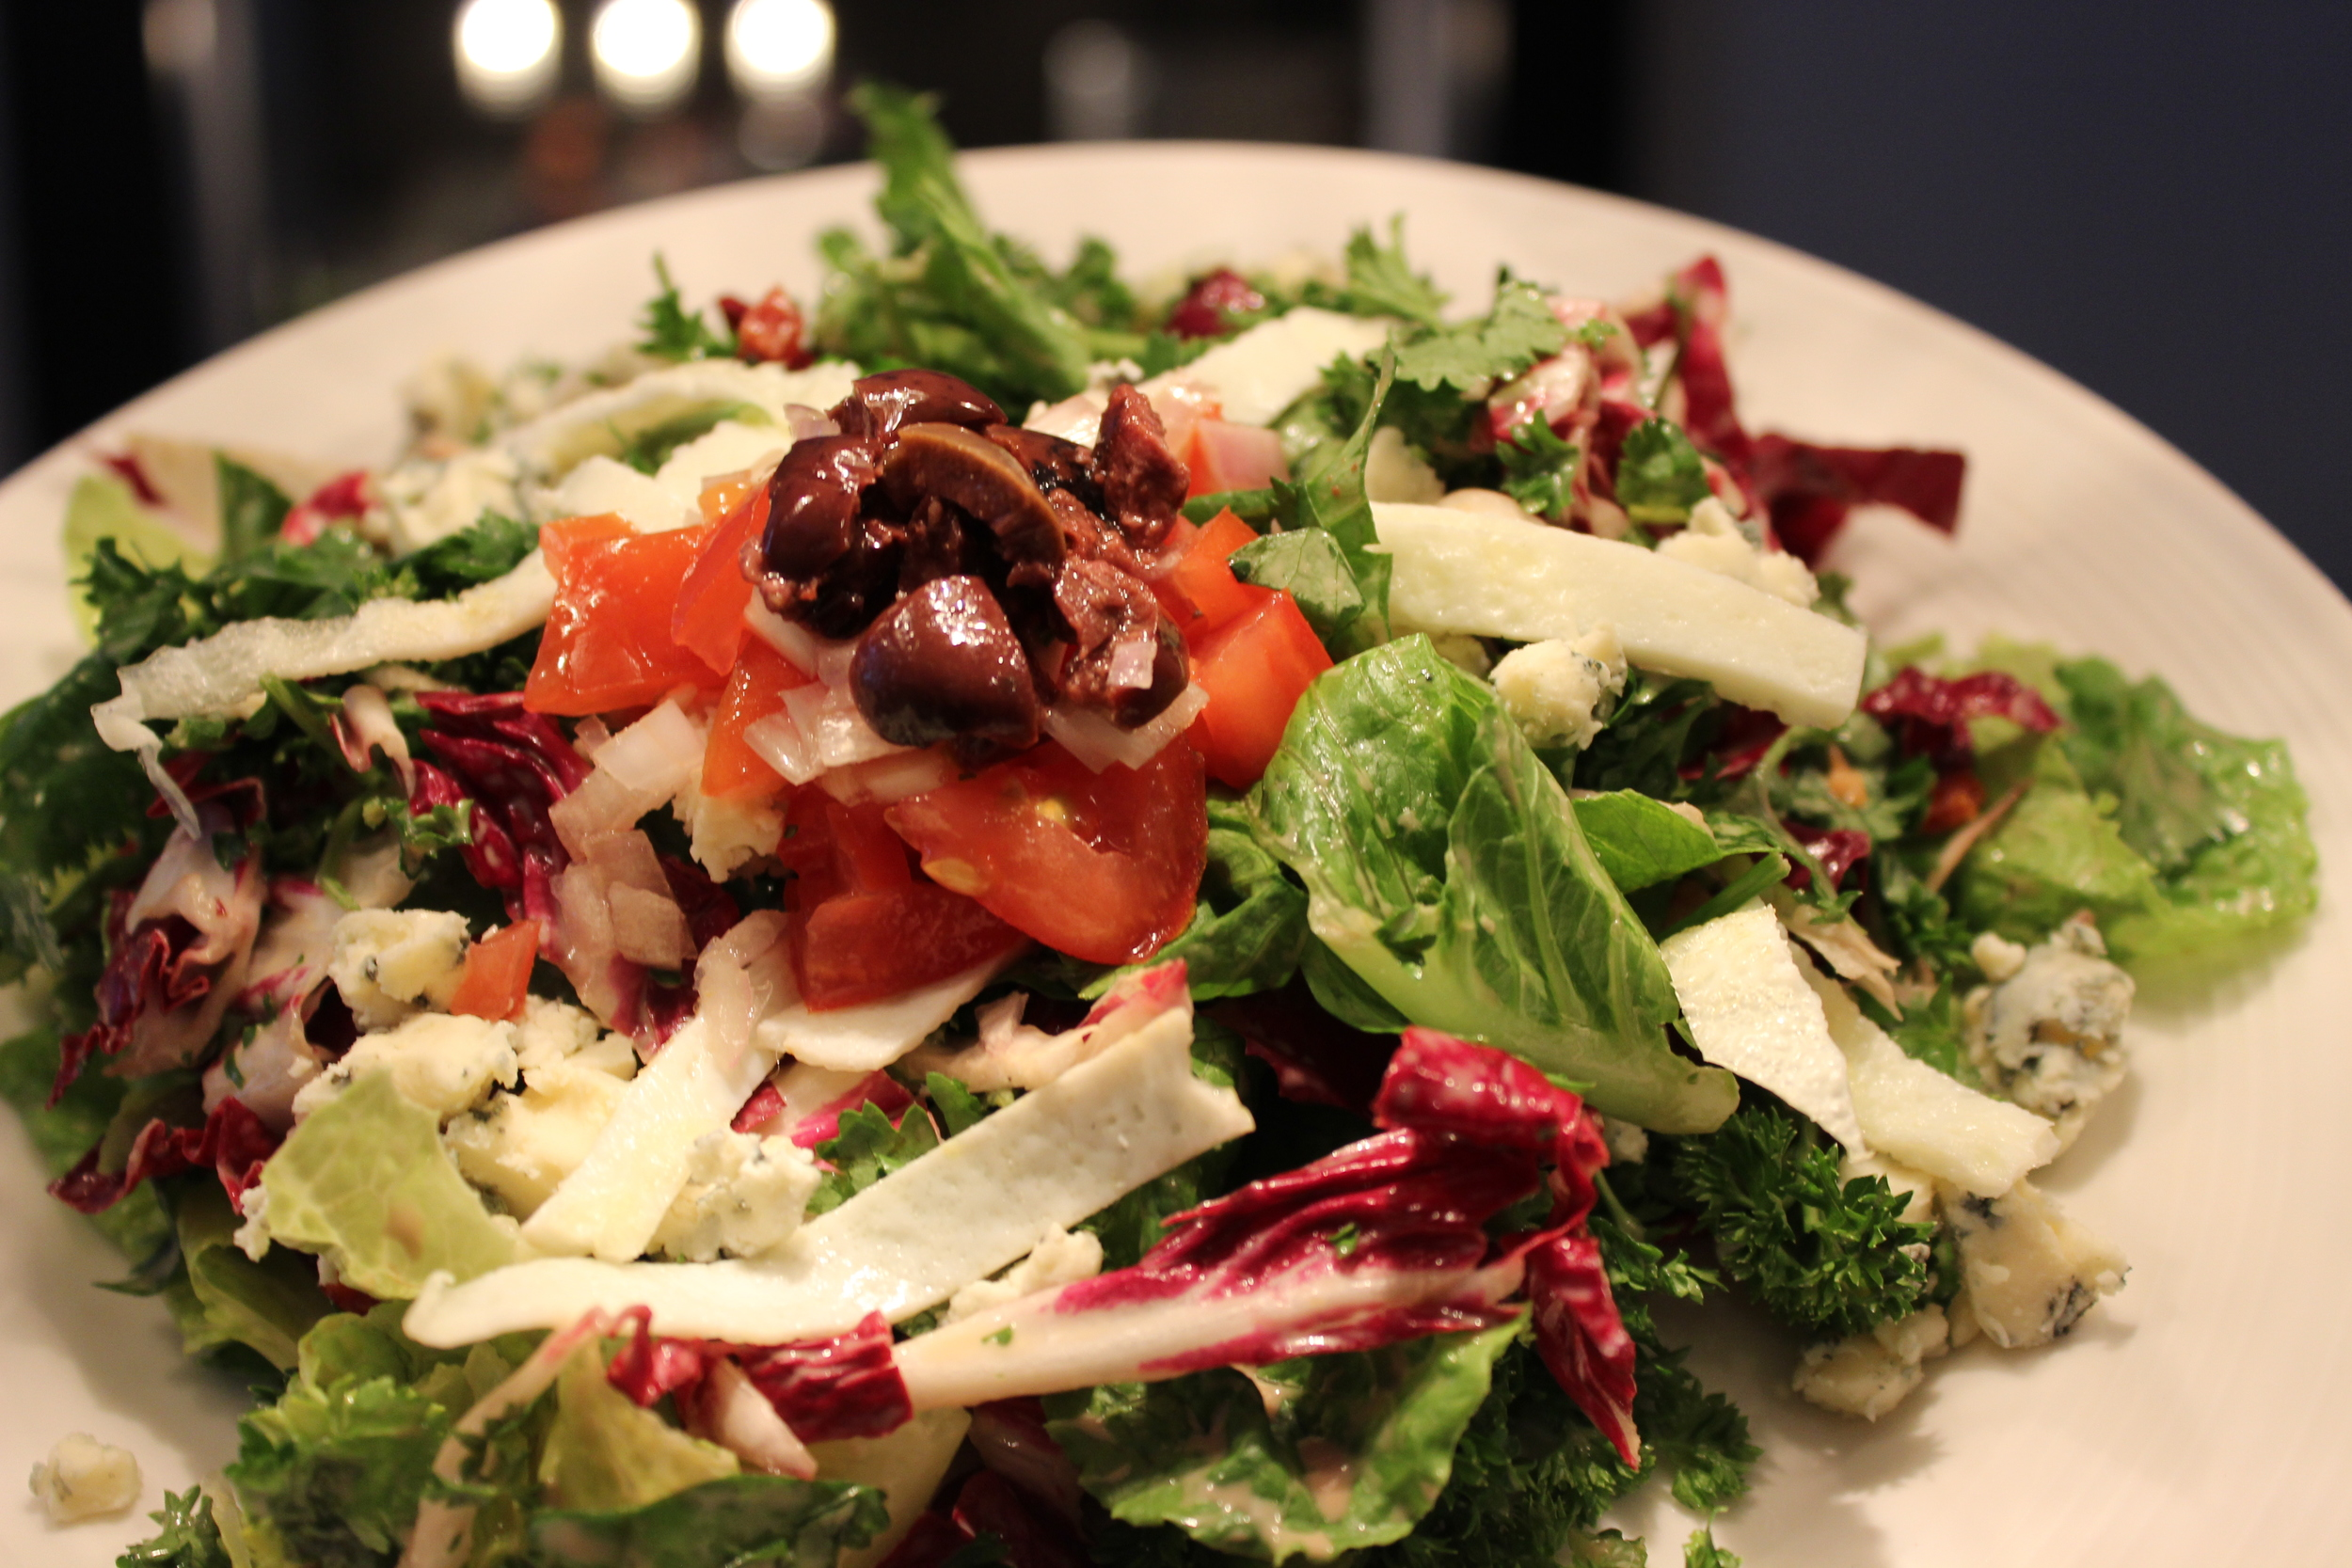 Garden Salad with Blue Cheese and Egg Whites, topped with Fresh Tomato Salsa and Kalamata Olives.